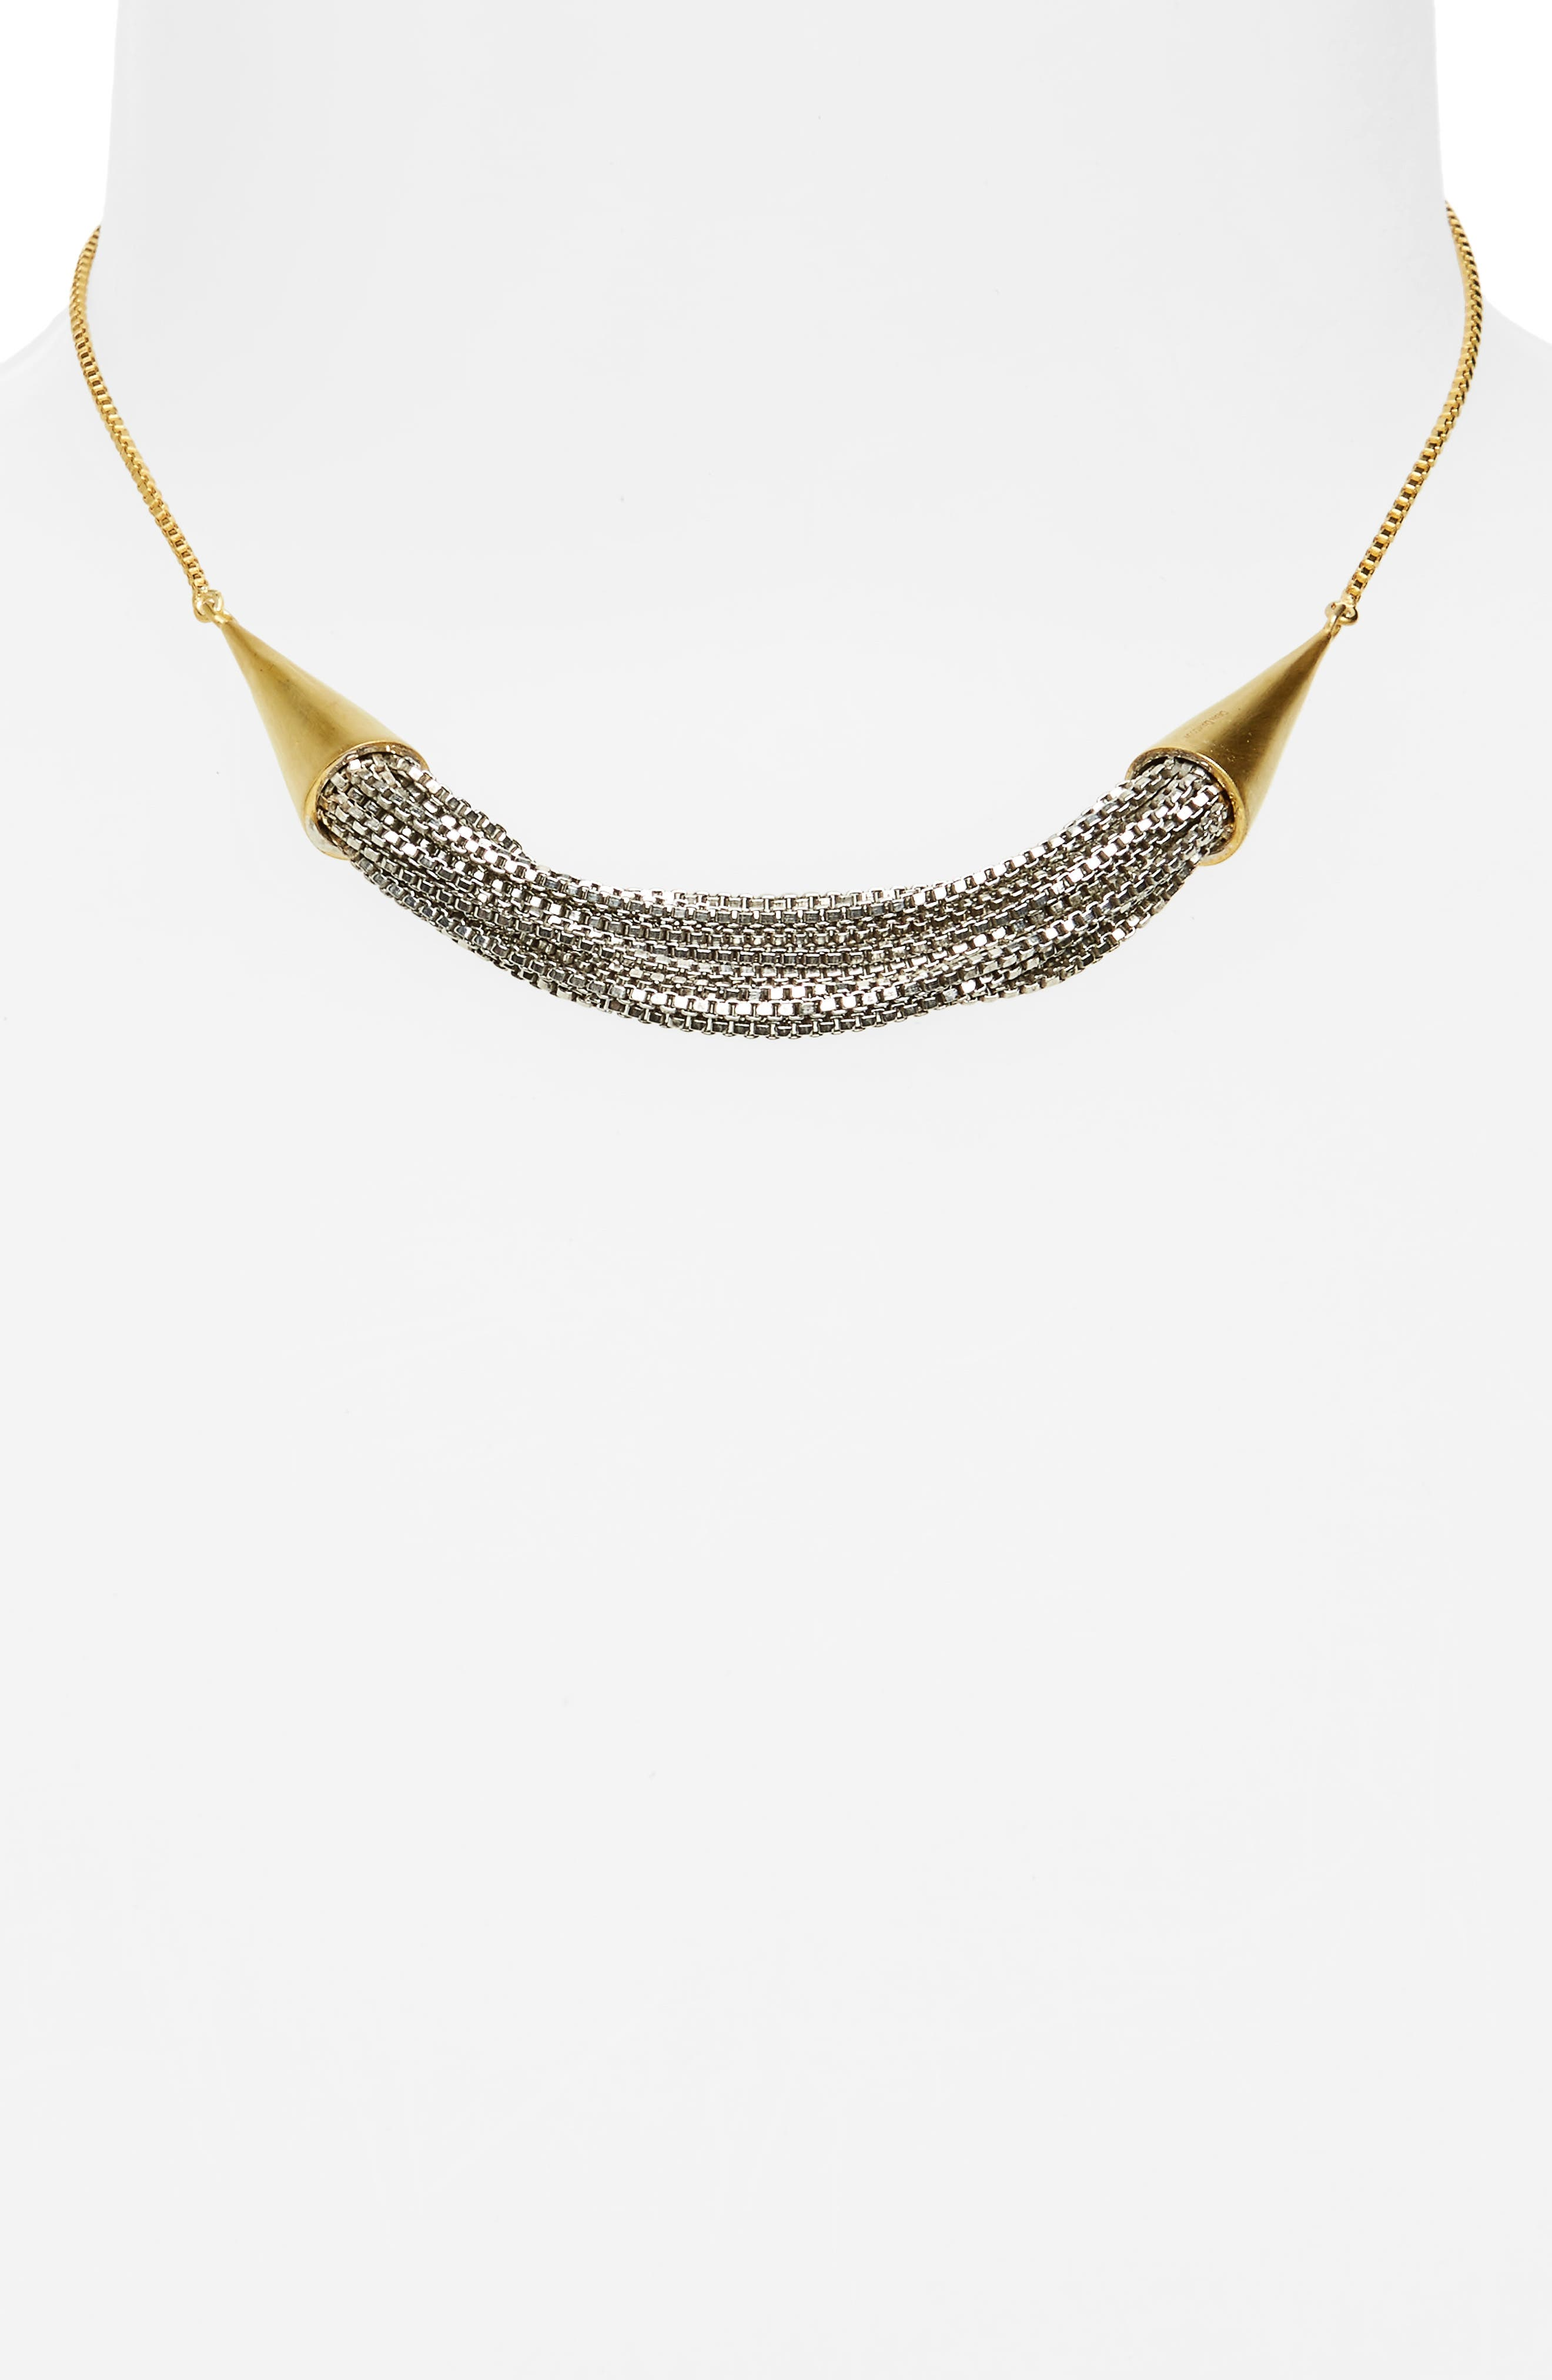 Liquid Chain Collar Necklace,                             Alternate thumbnail 2, color,                             Gold/ Silver